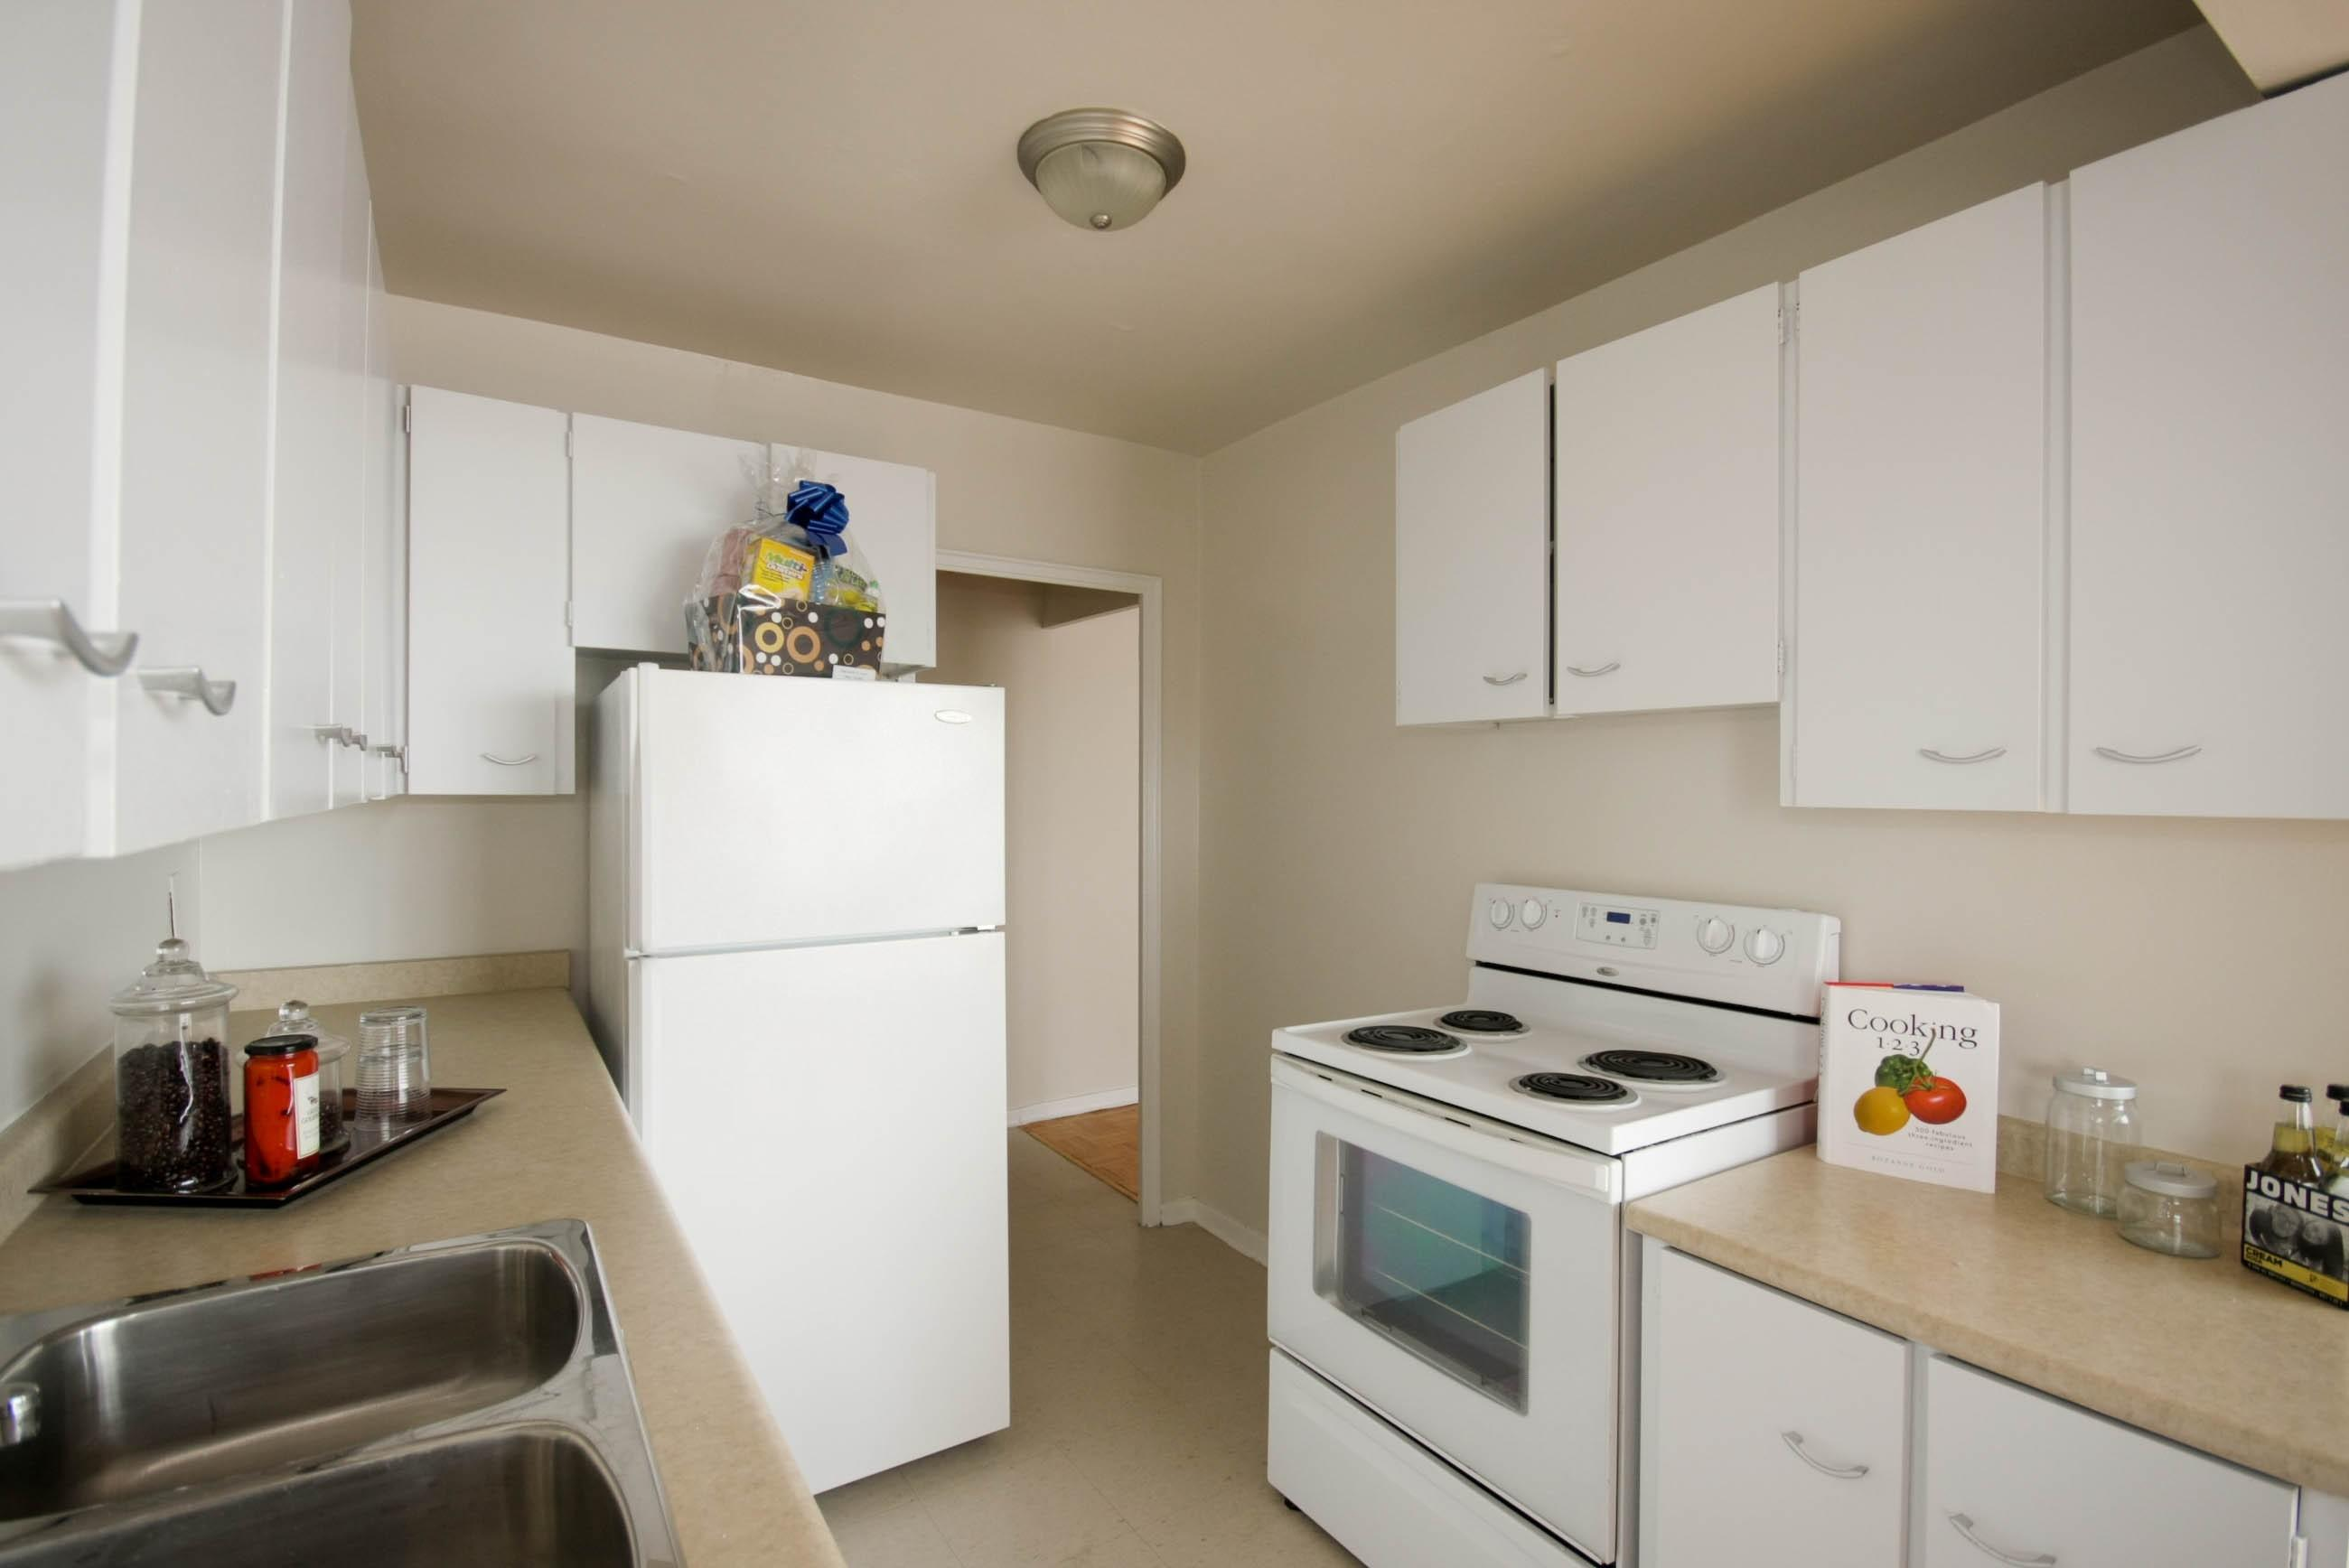 The dorchester apartments london on walk score - 3 bedroom apartments in dorchester ...